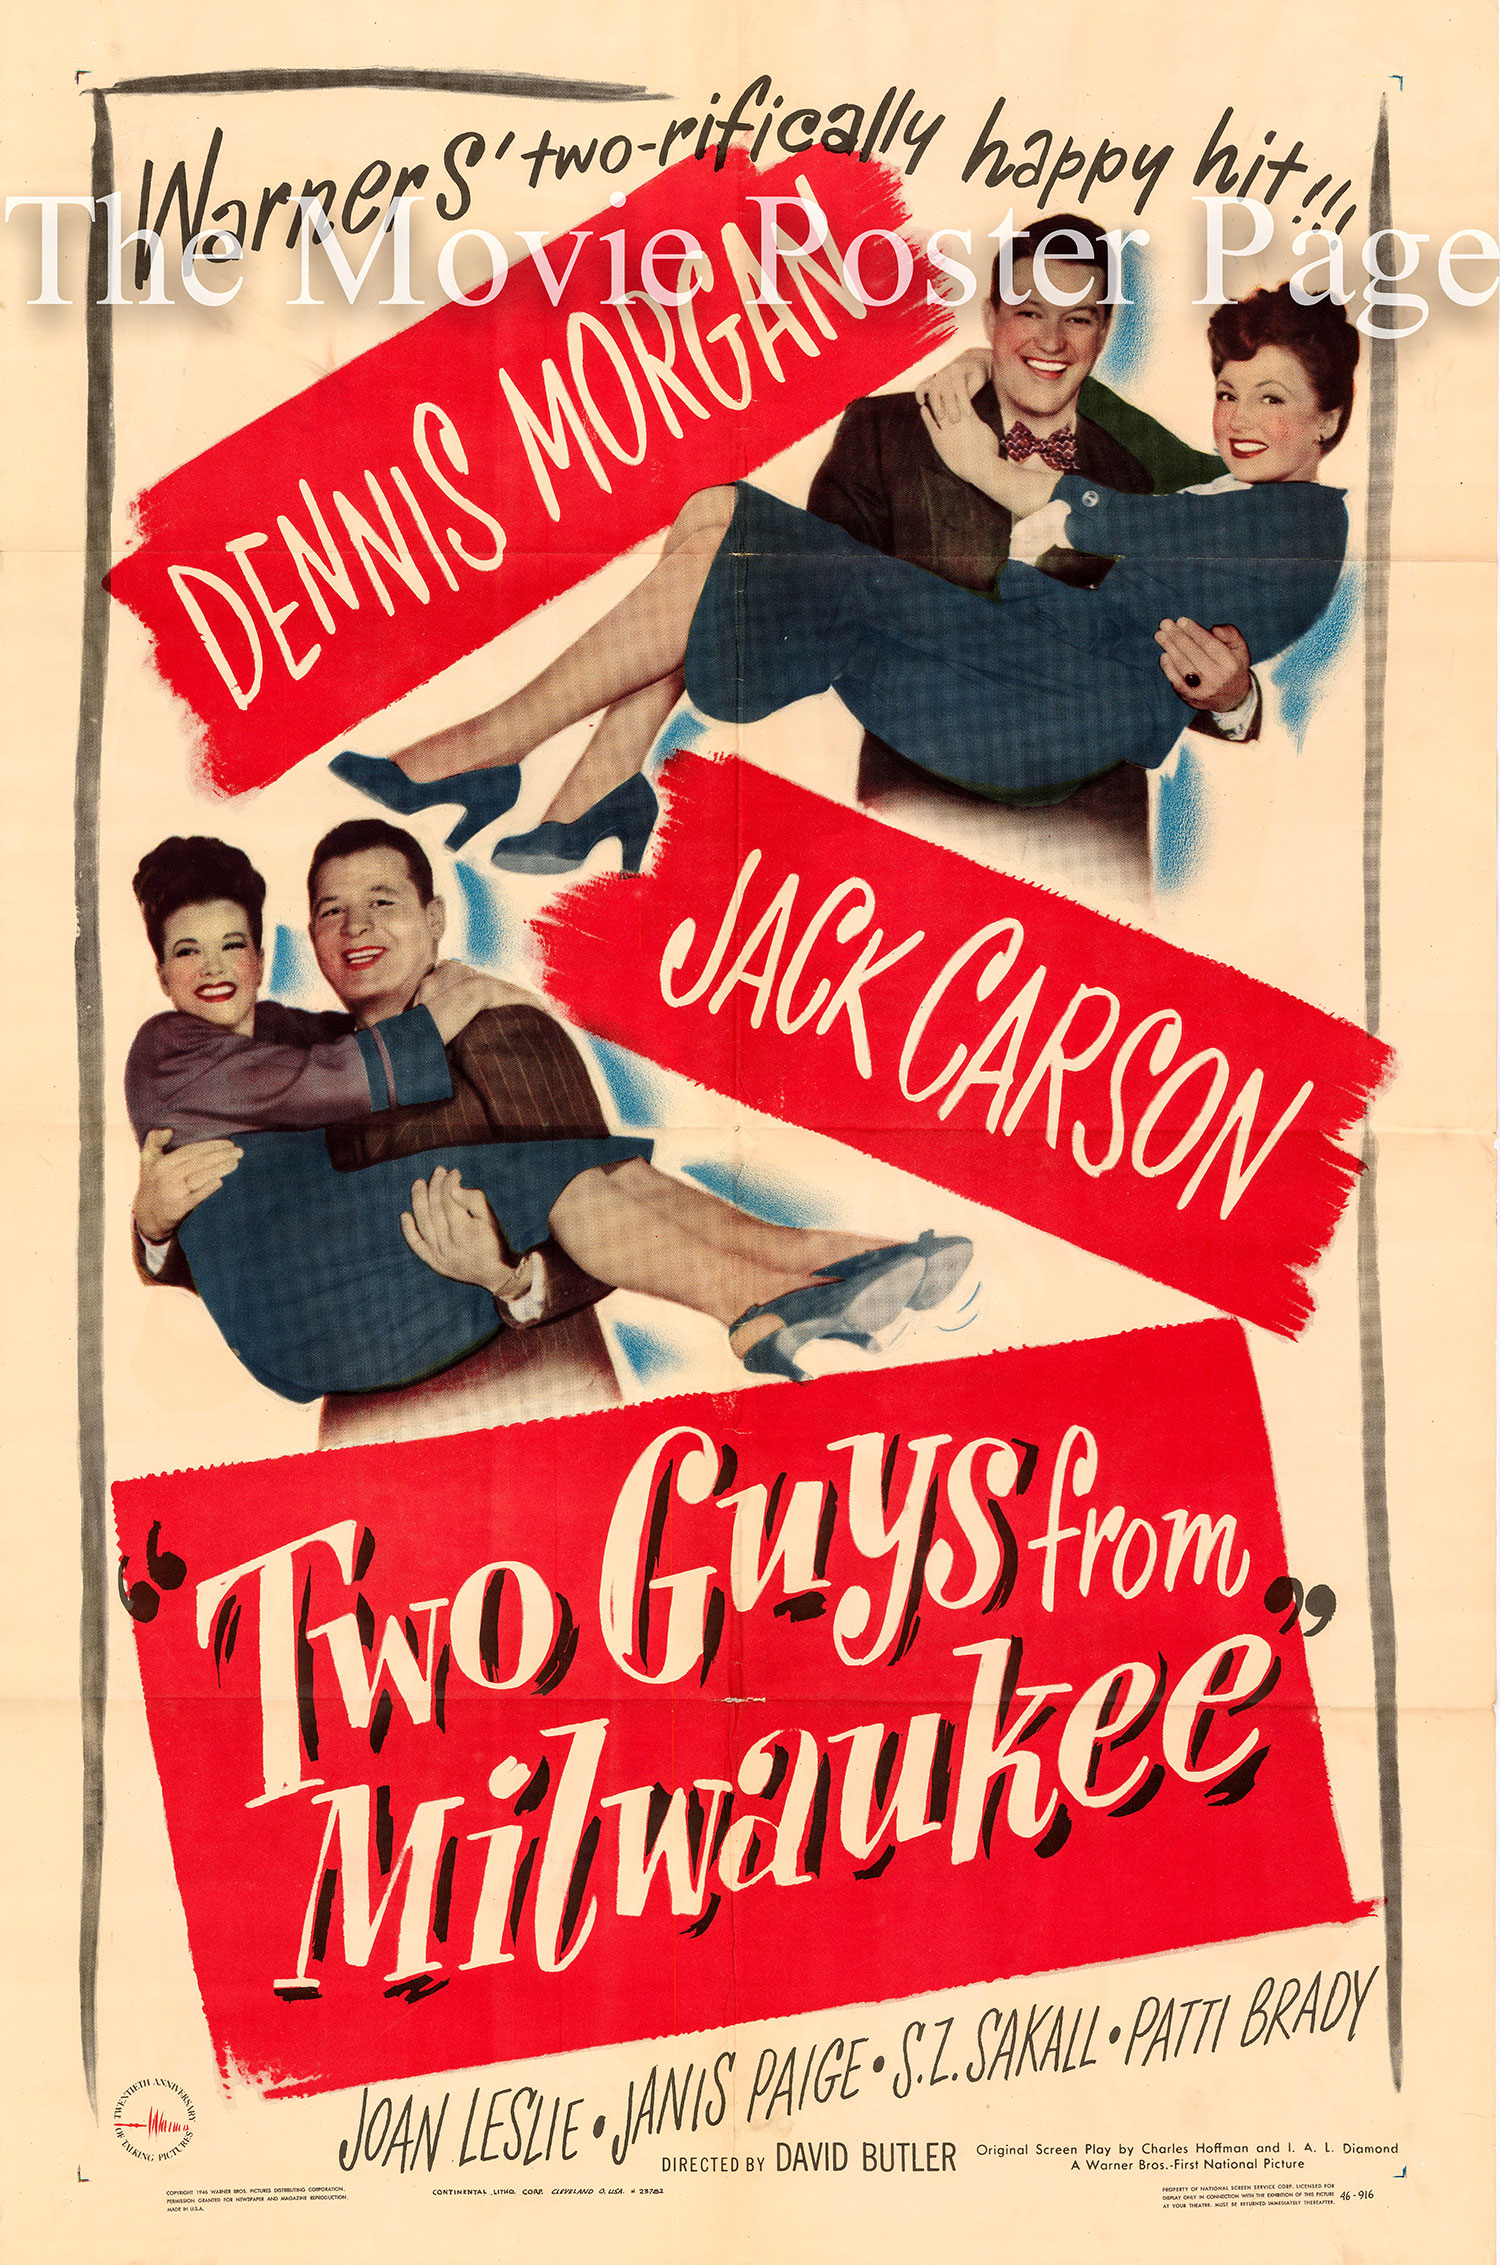 Pictured is a US one-sheet promotional poster for the 1946 David Butler film Two Guys from Milwaukee starring Dennis Morgan.